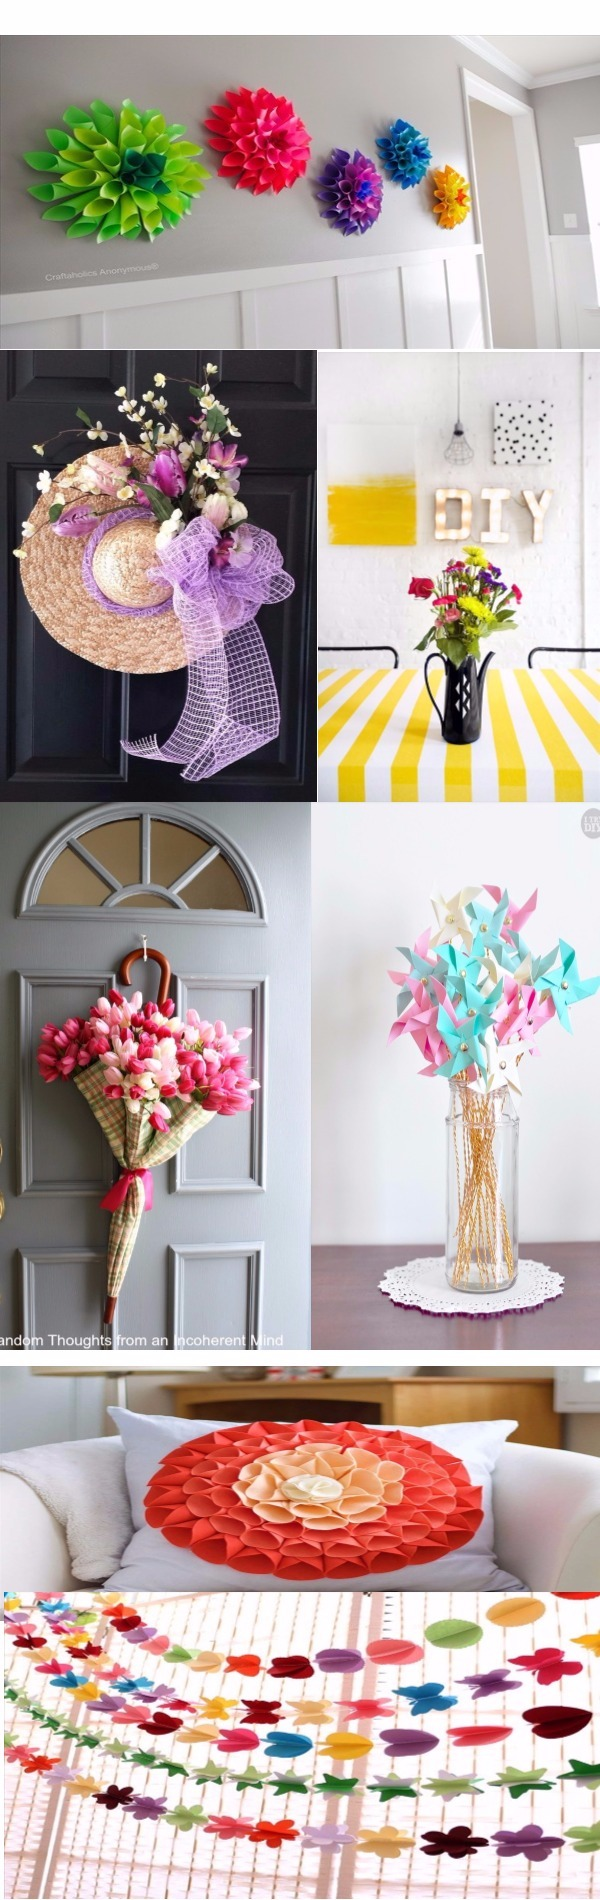 18 Of The Best Summer Decorations Ideas For Your Home